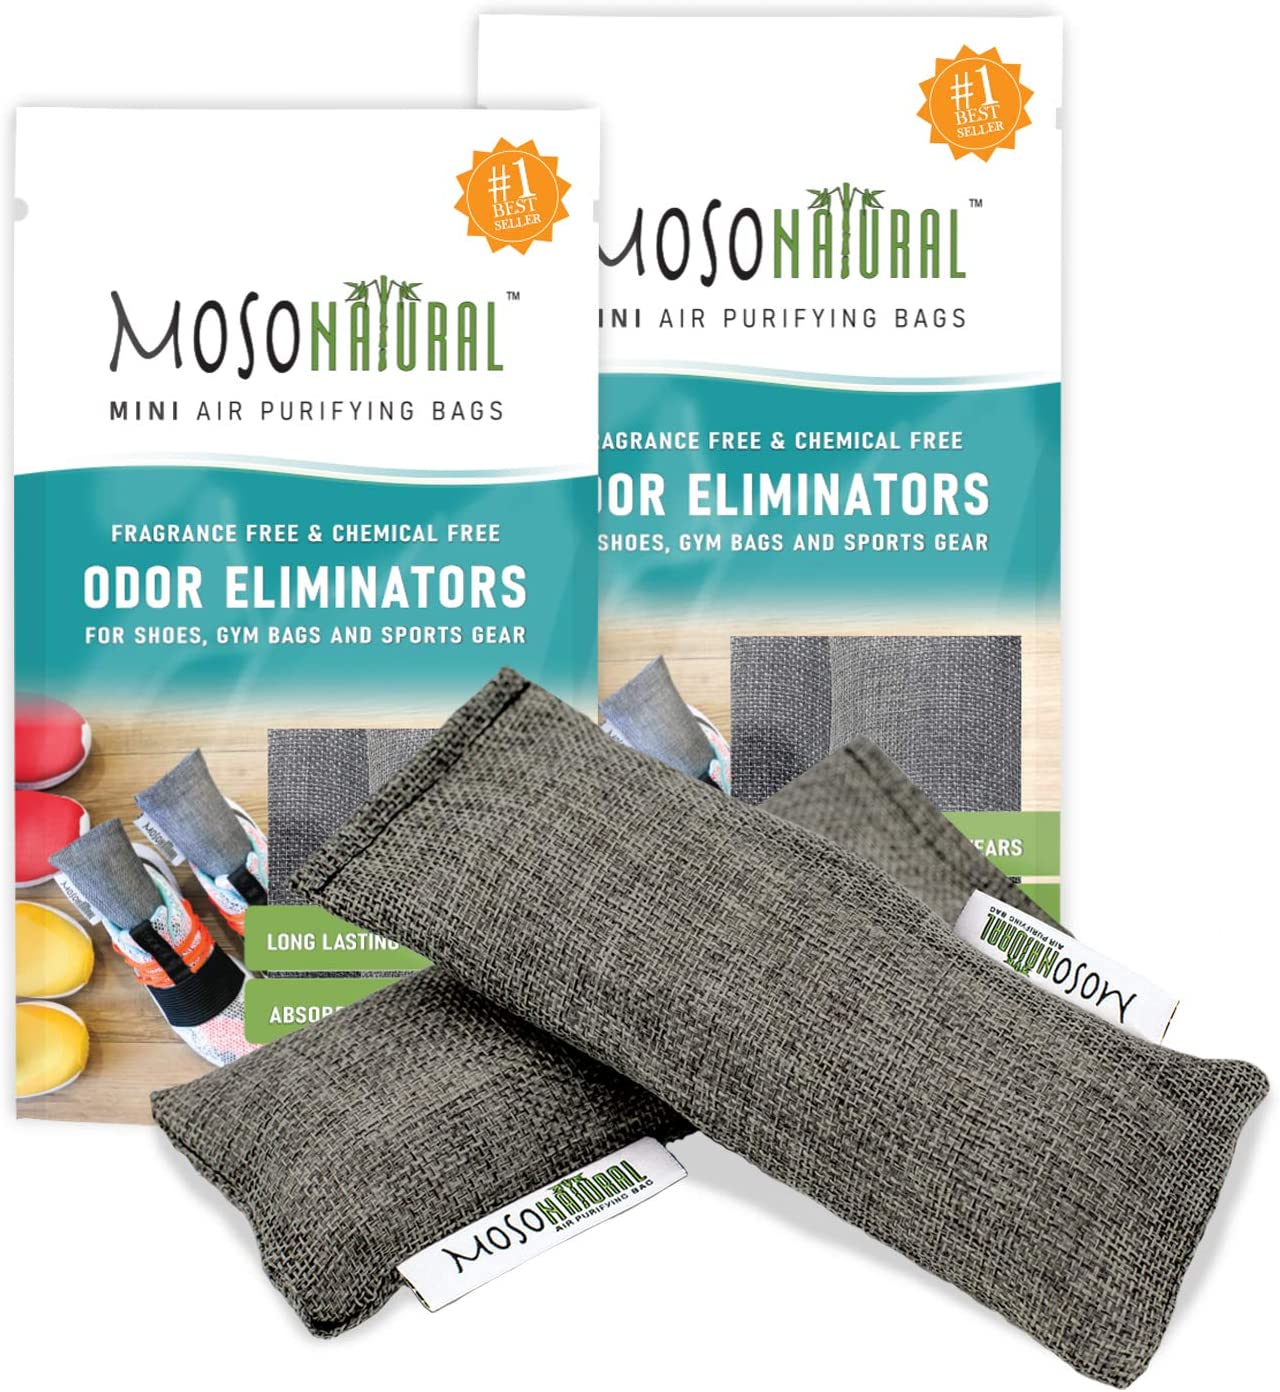 MOSO NATURAL: The Original Air Purifying Bag for Shoes, Gym Bags and Sports Gear. an Unscented, Chemical-Free Odor Eliminator 2 Packs of 2 (4 Total)